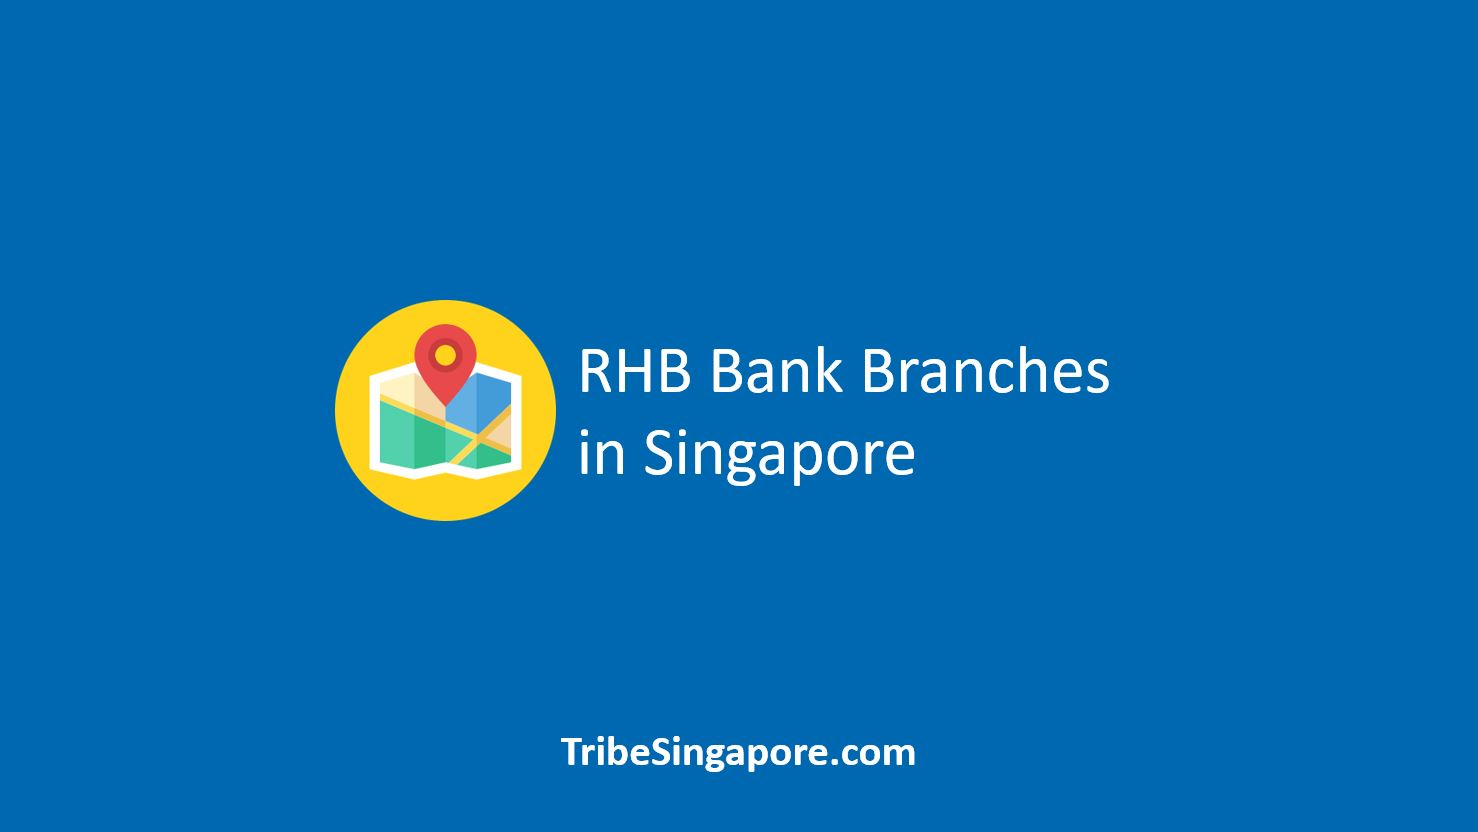 RHB Bank Branches in Singapore